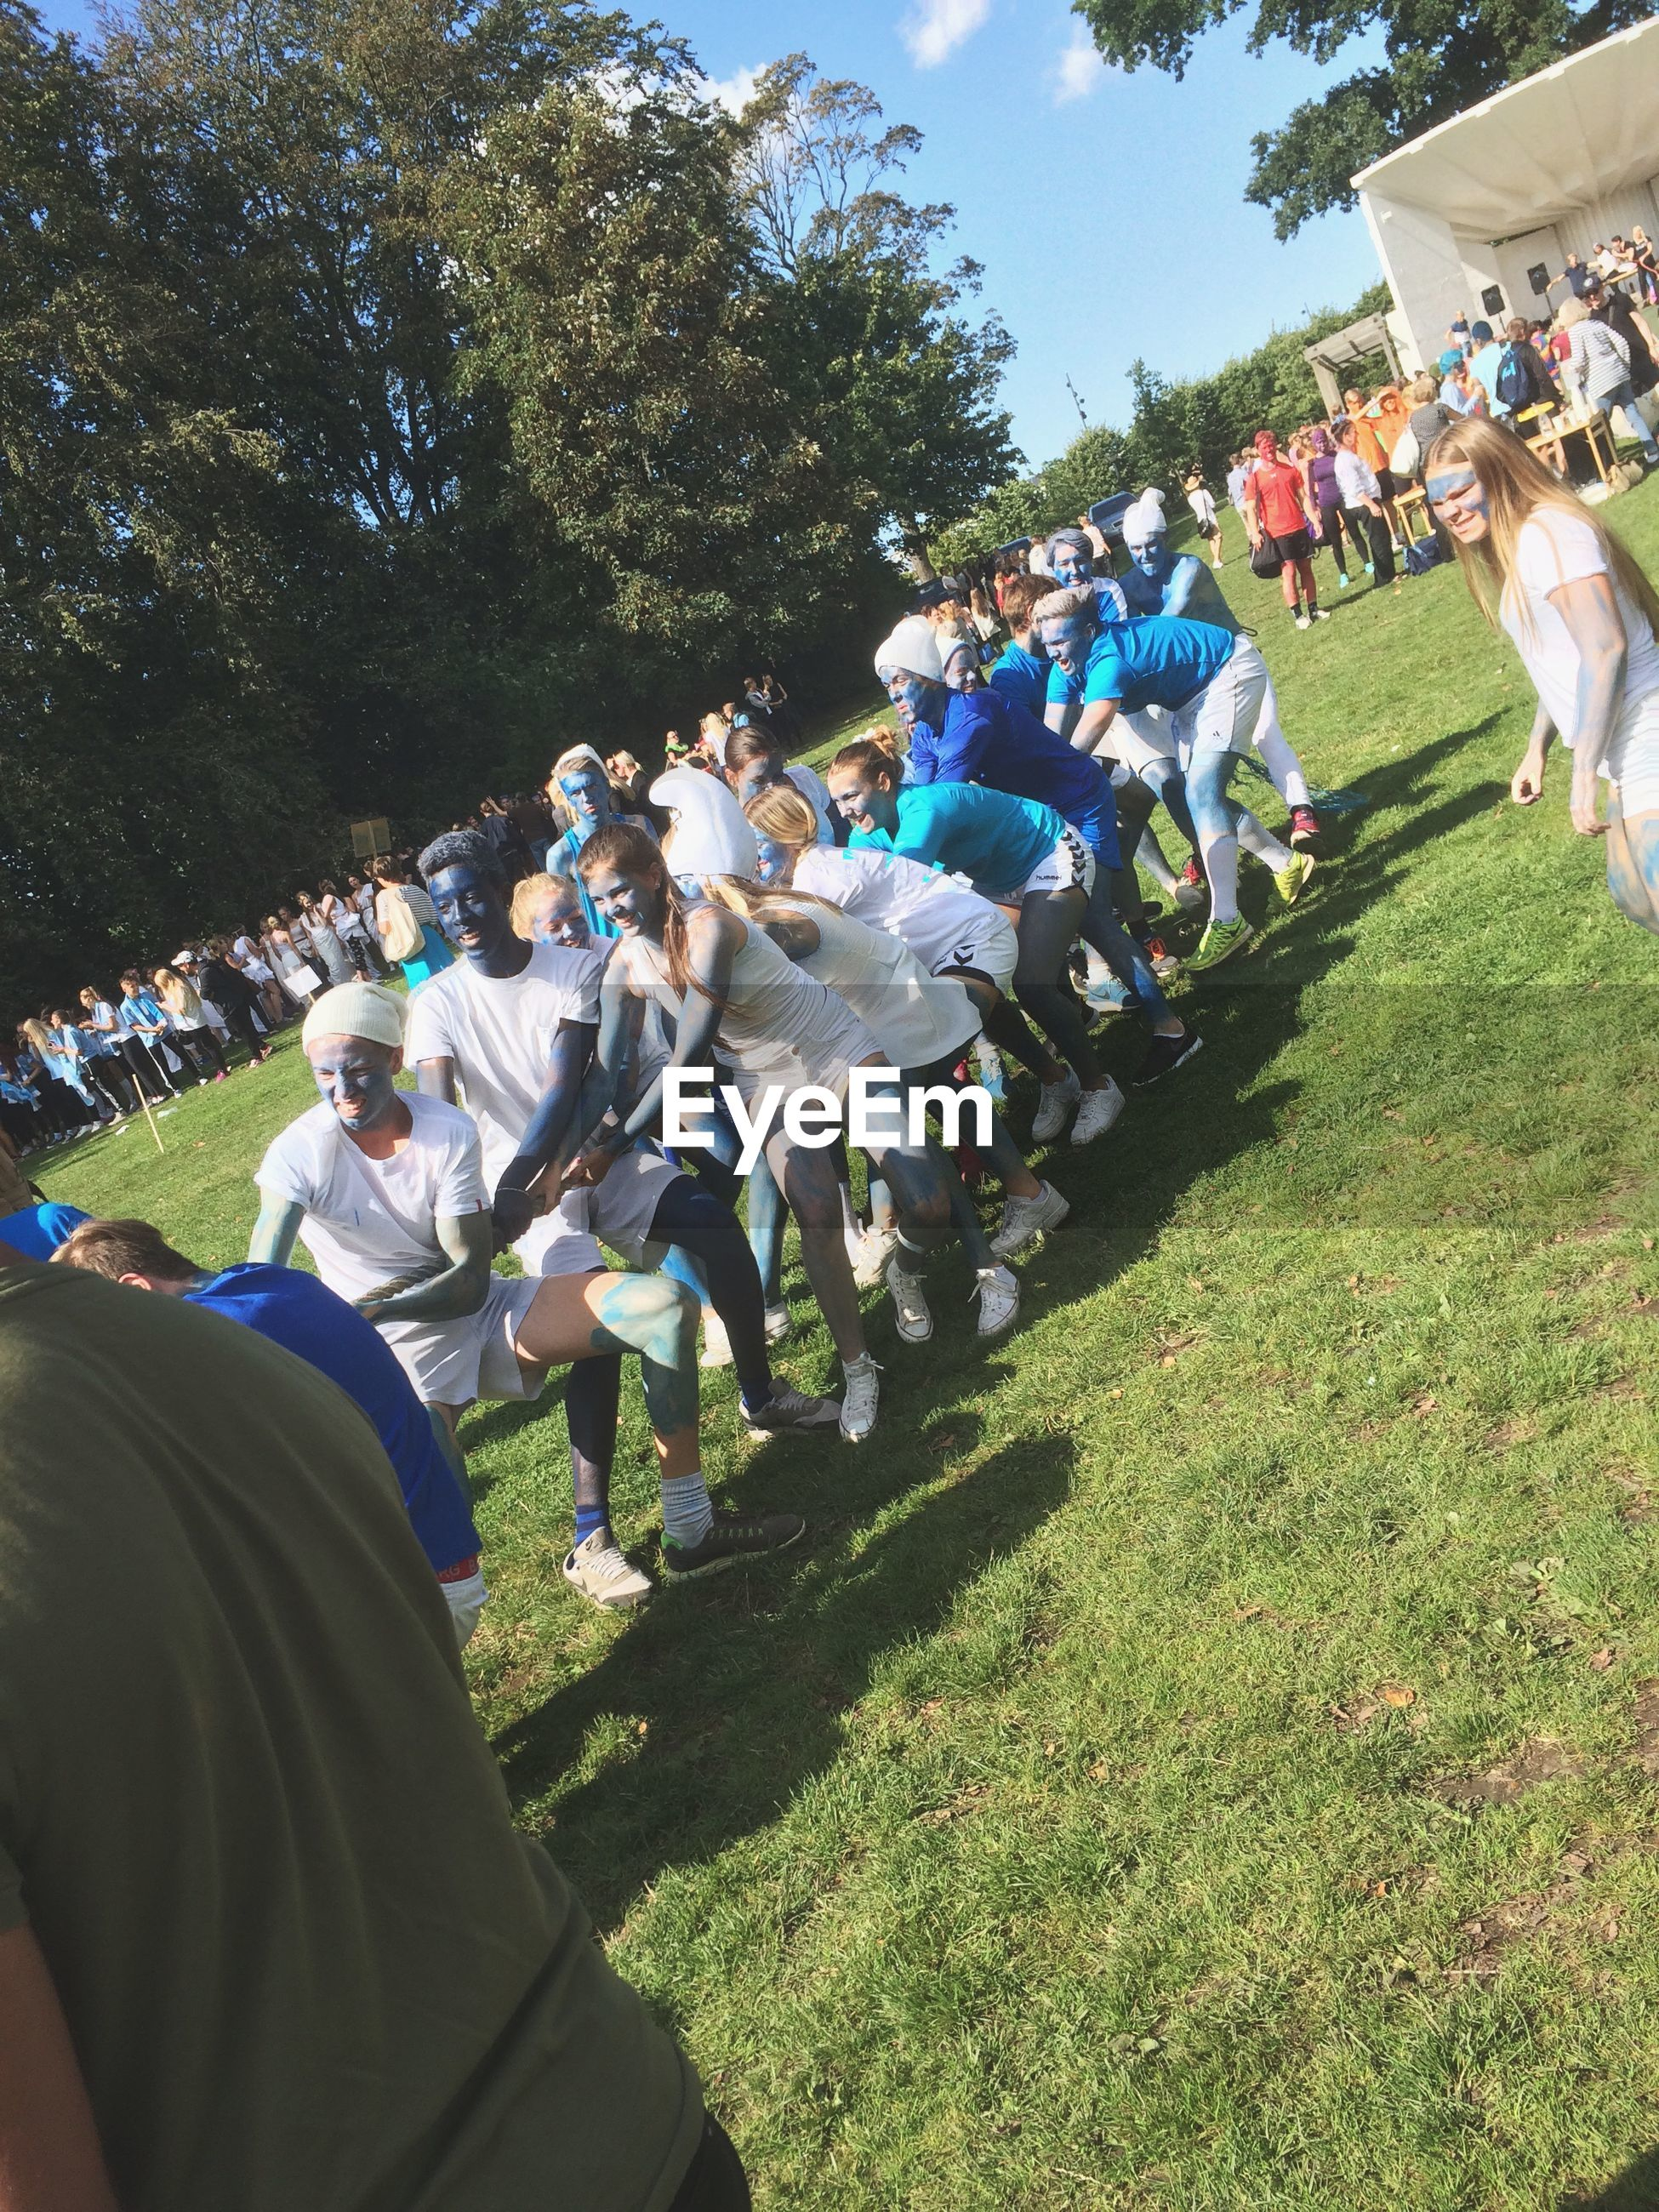 men, grass, leisure activity, lifestyles, sunlight, tree, person, green color, park - man made space, day, field, incidental people, blue, outdoors, large group of people, growth, nature, unrecognizable person